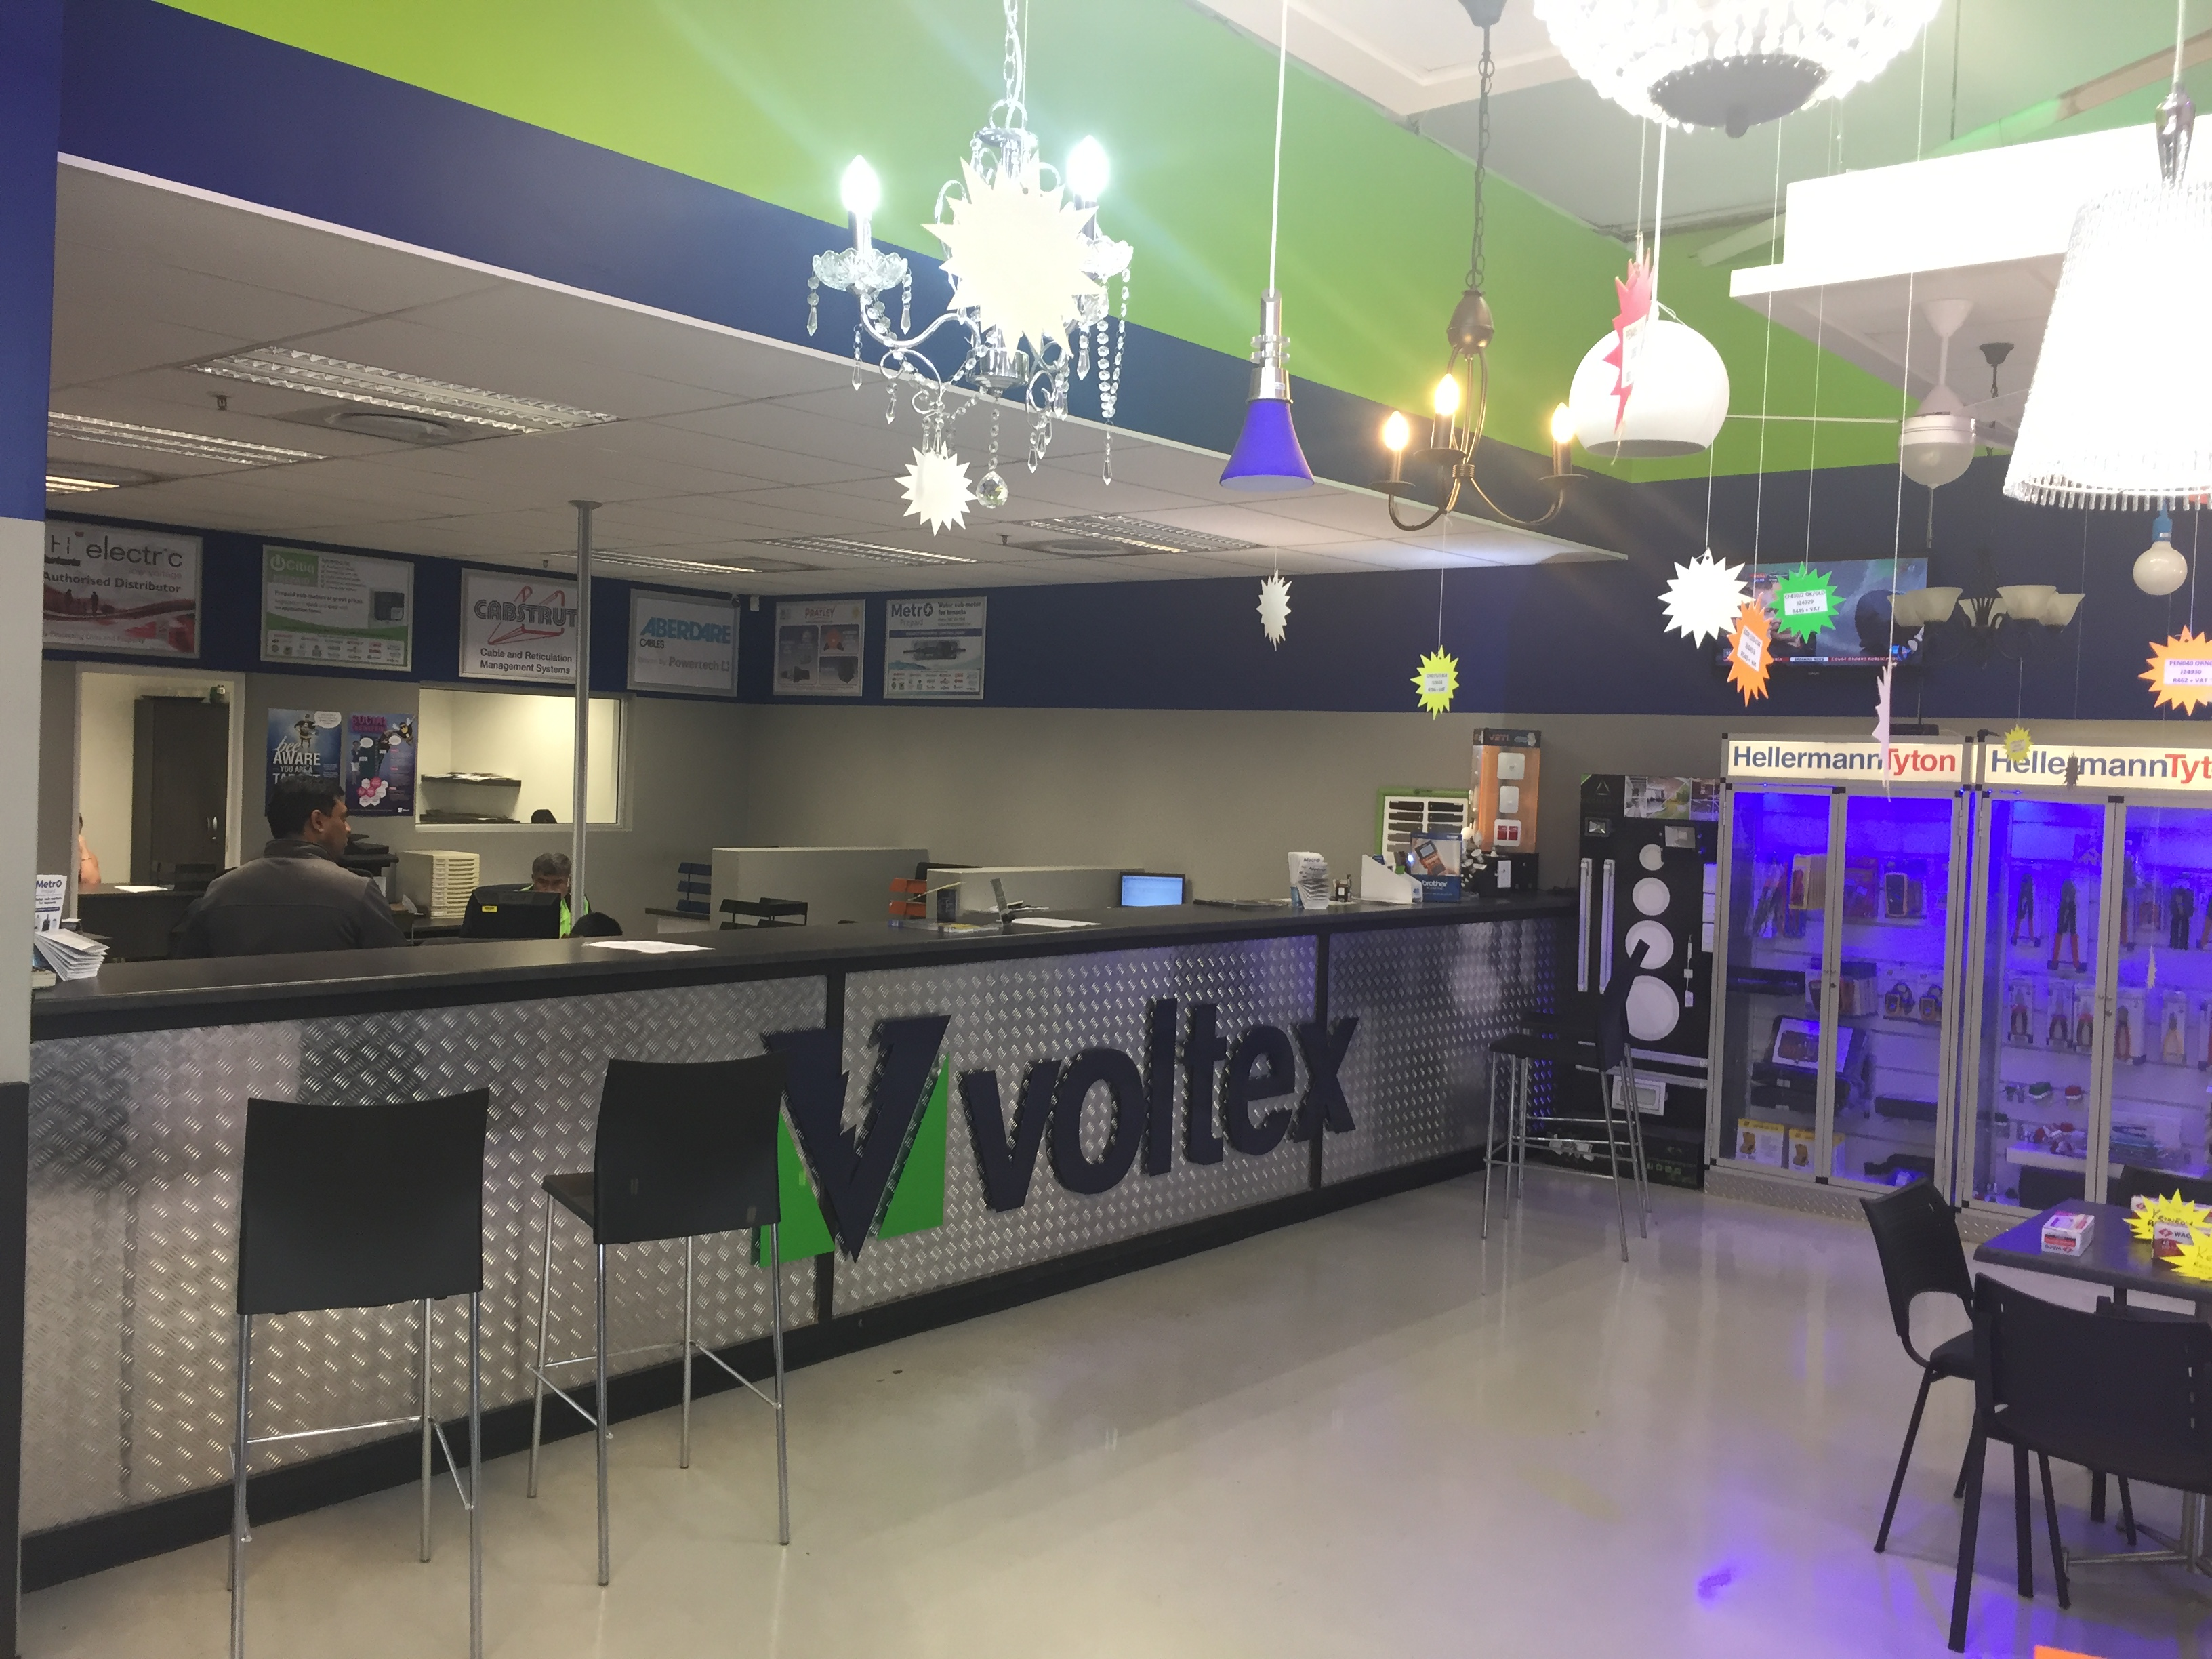 About us voltex as such voltex is able to provide for all electrical product requirements with high levels of service this impressive stock availability consists of aloadofball Image collections